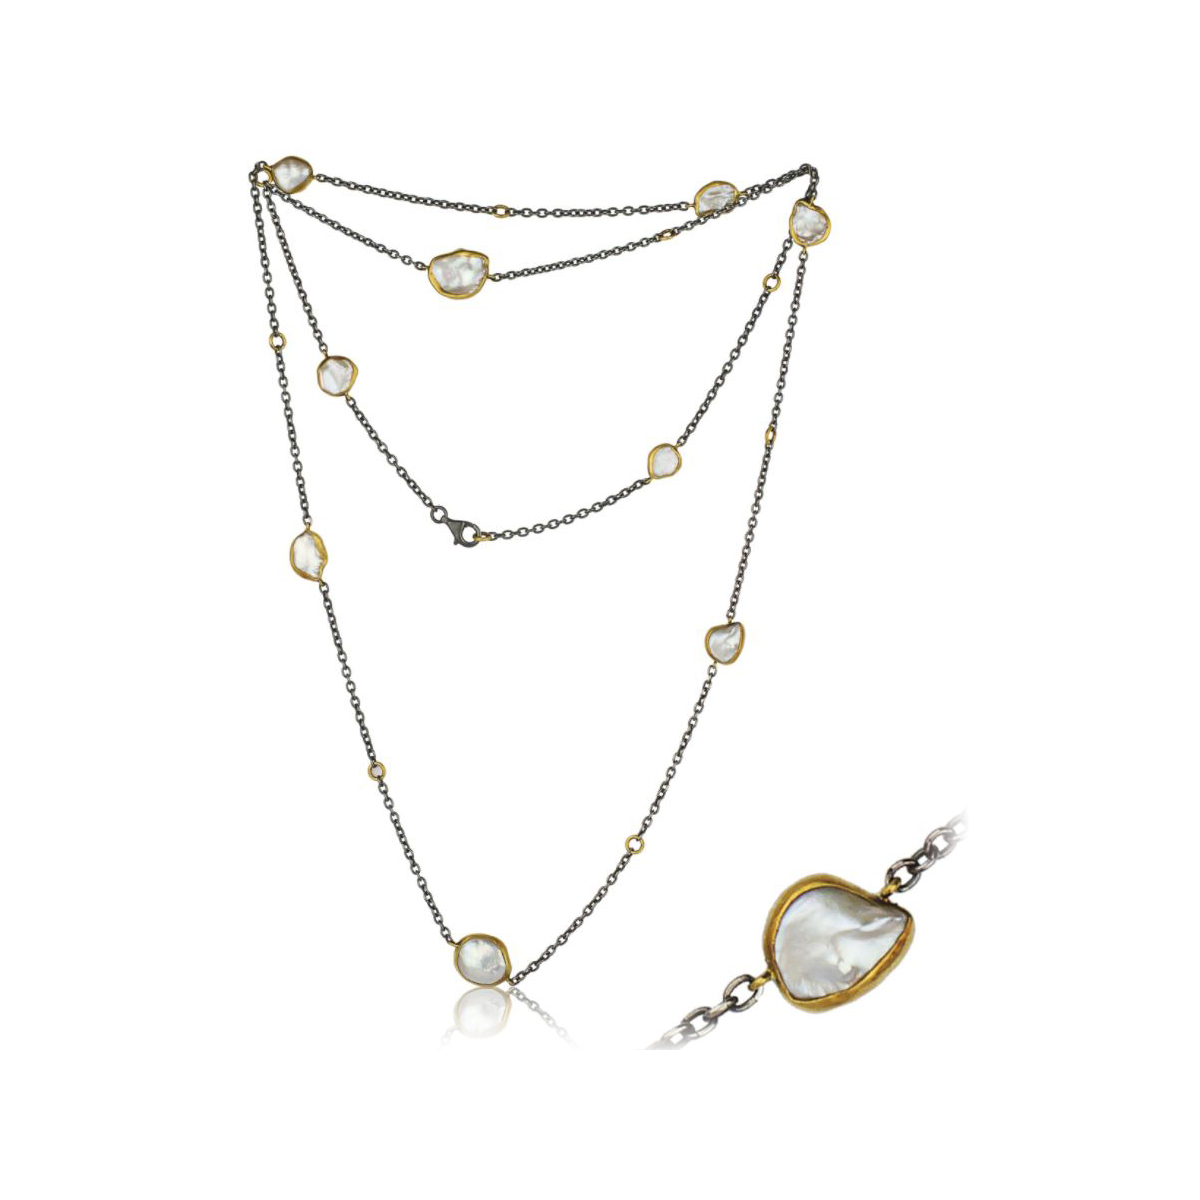 Lika Behar Oxidized Silver and 24 Karat Yellow Gold Katya Keshi Pearl Station Necklace